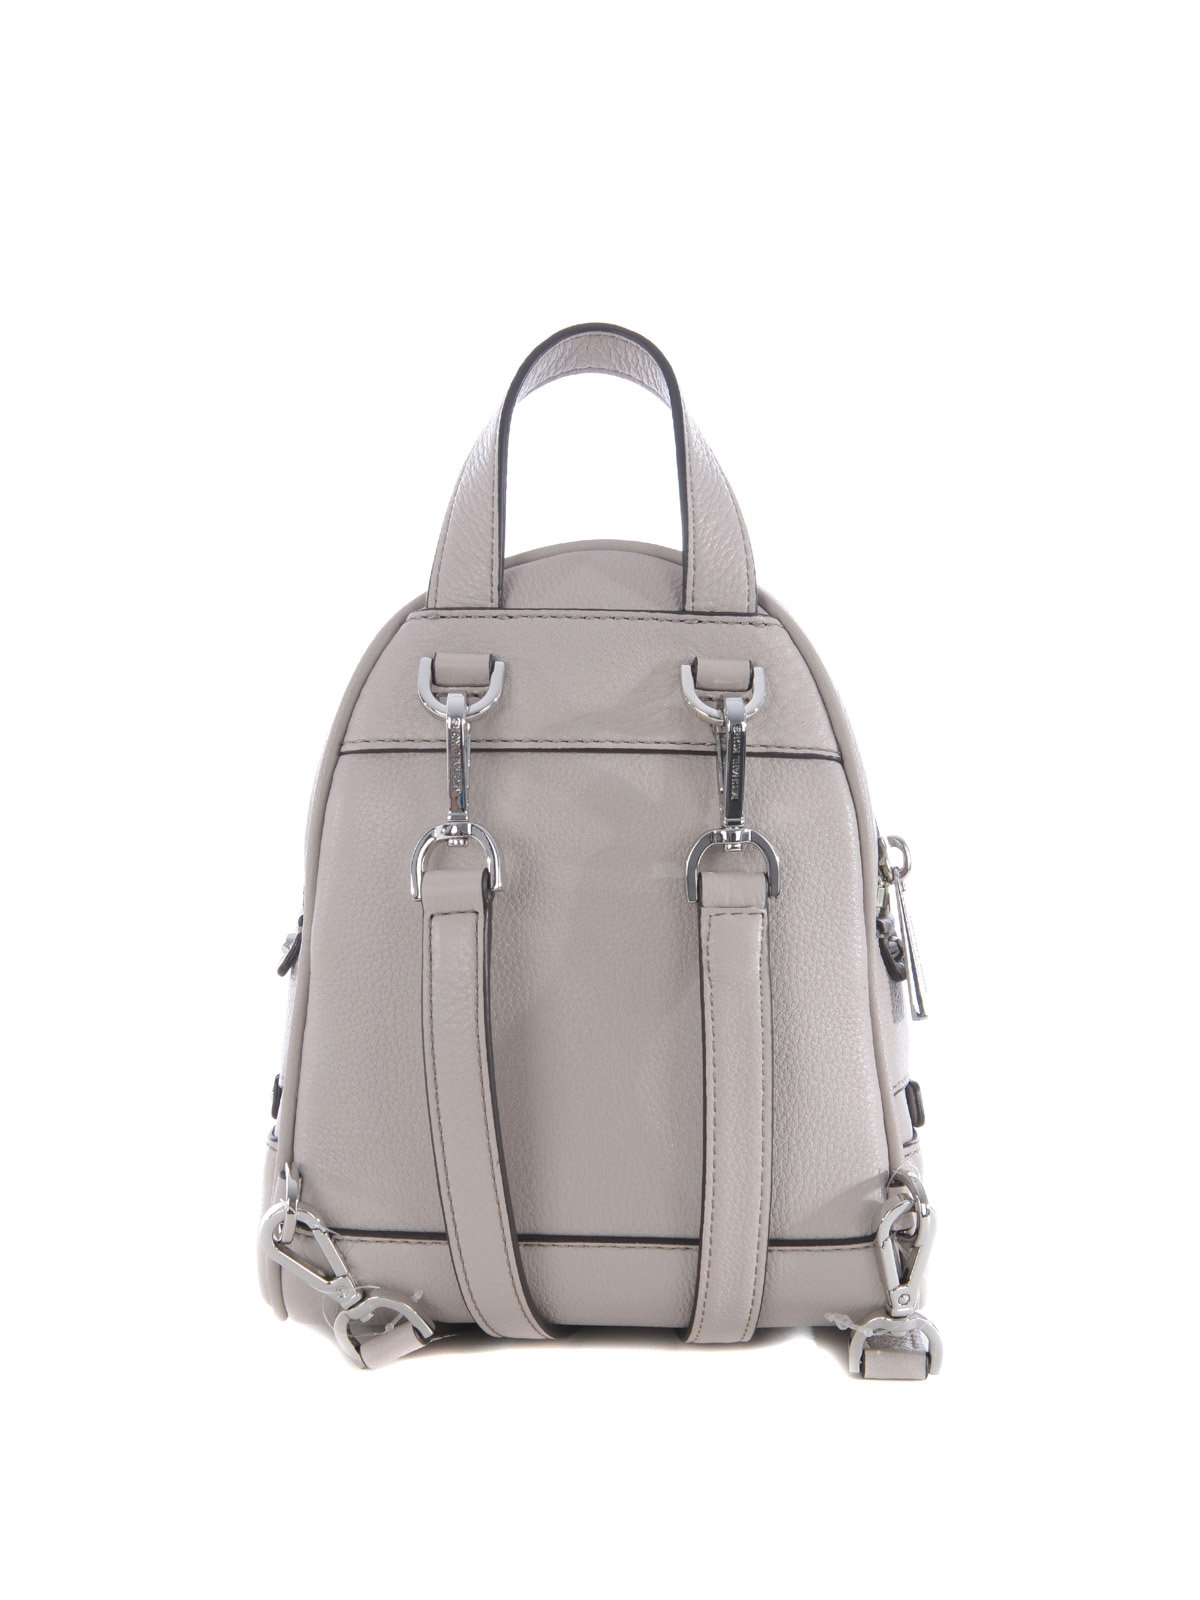 426ab7be4030 Extra Small Backpack Michael Kors- Fenix Toulouse Handball